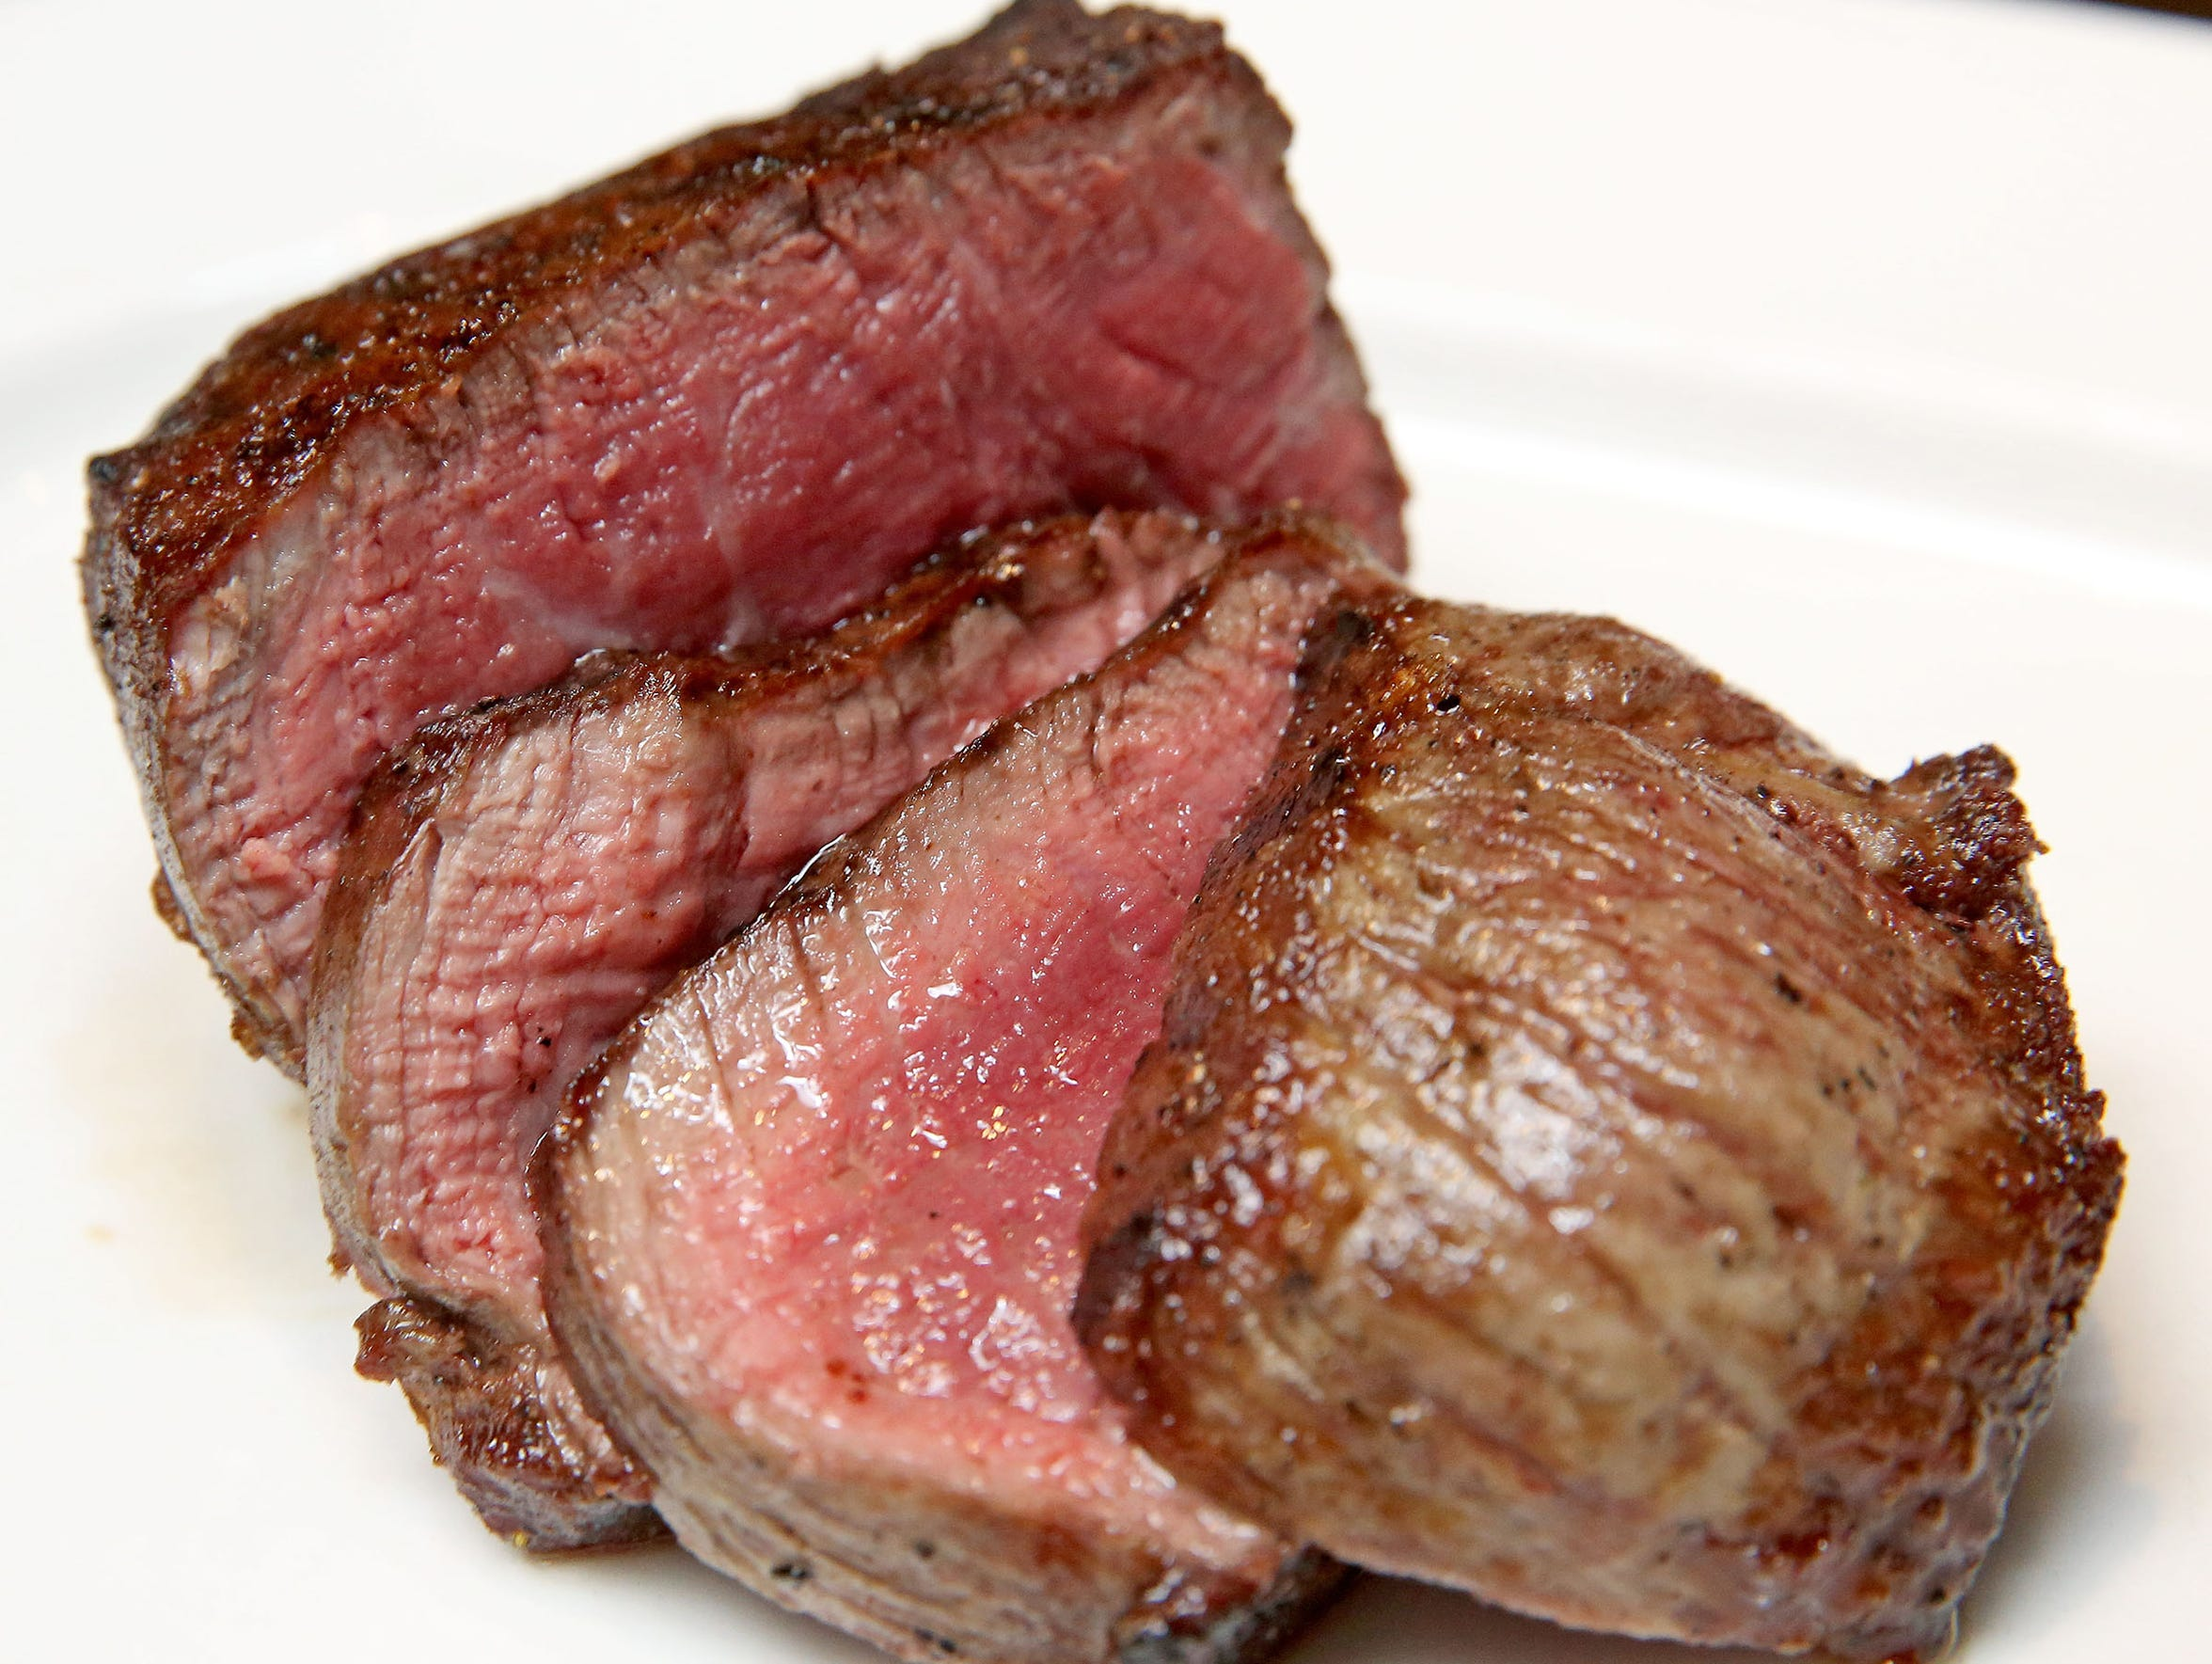 A crust is seared onto the filet at downtown steakhouse